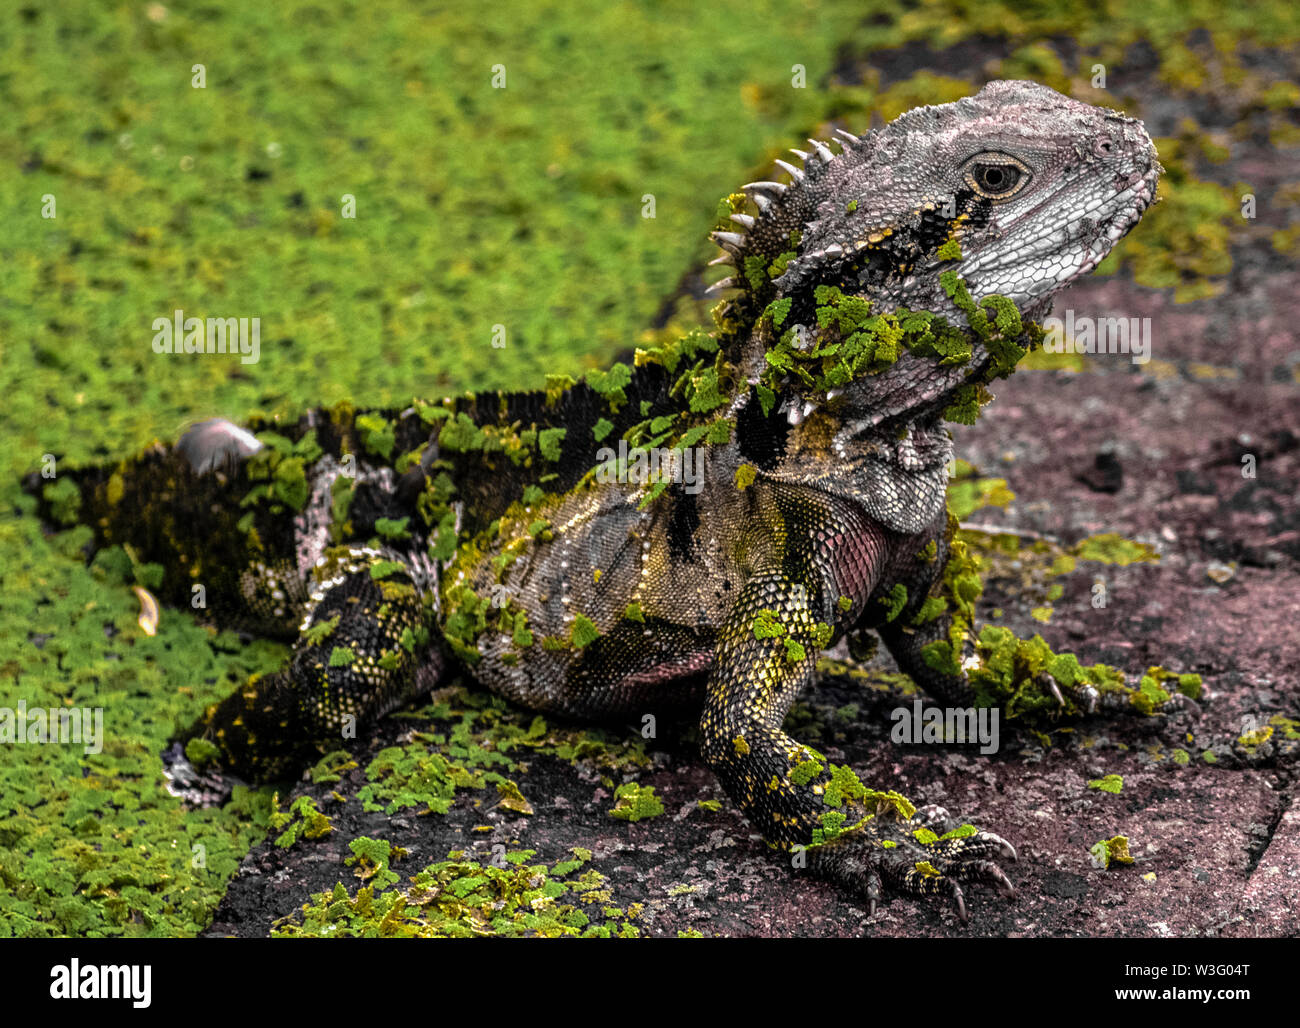 Eastern Water Dragon emerging from a pool covered in water weed - Stock Image